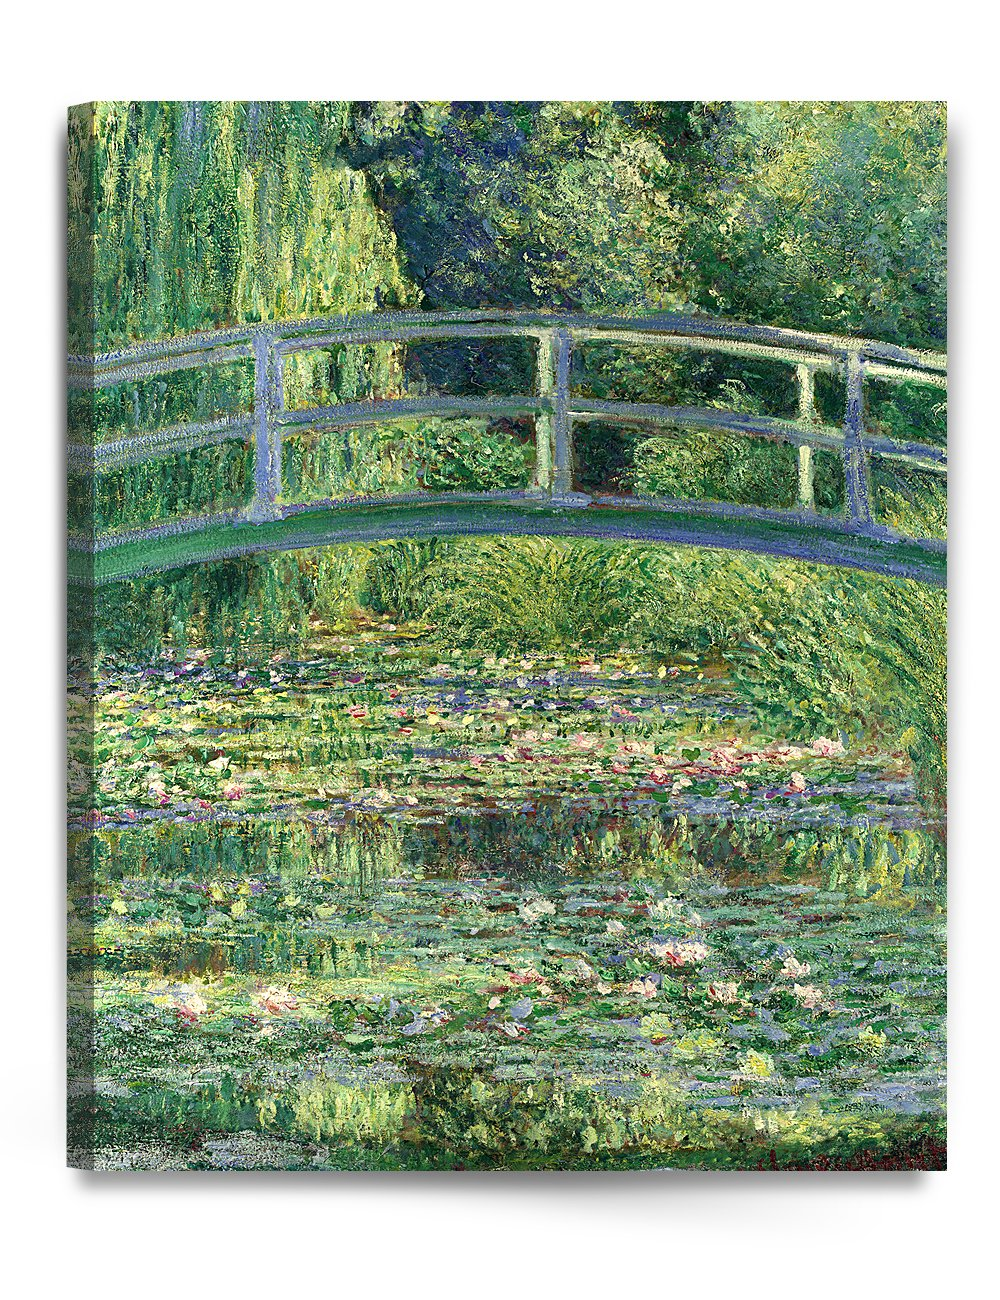 DECORARTS Japanese Water Lily Painting Reproduction Image 1